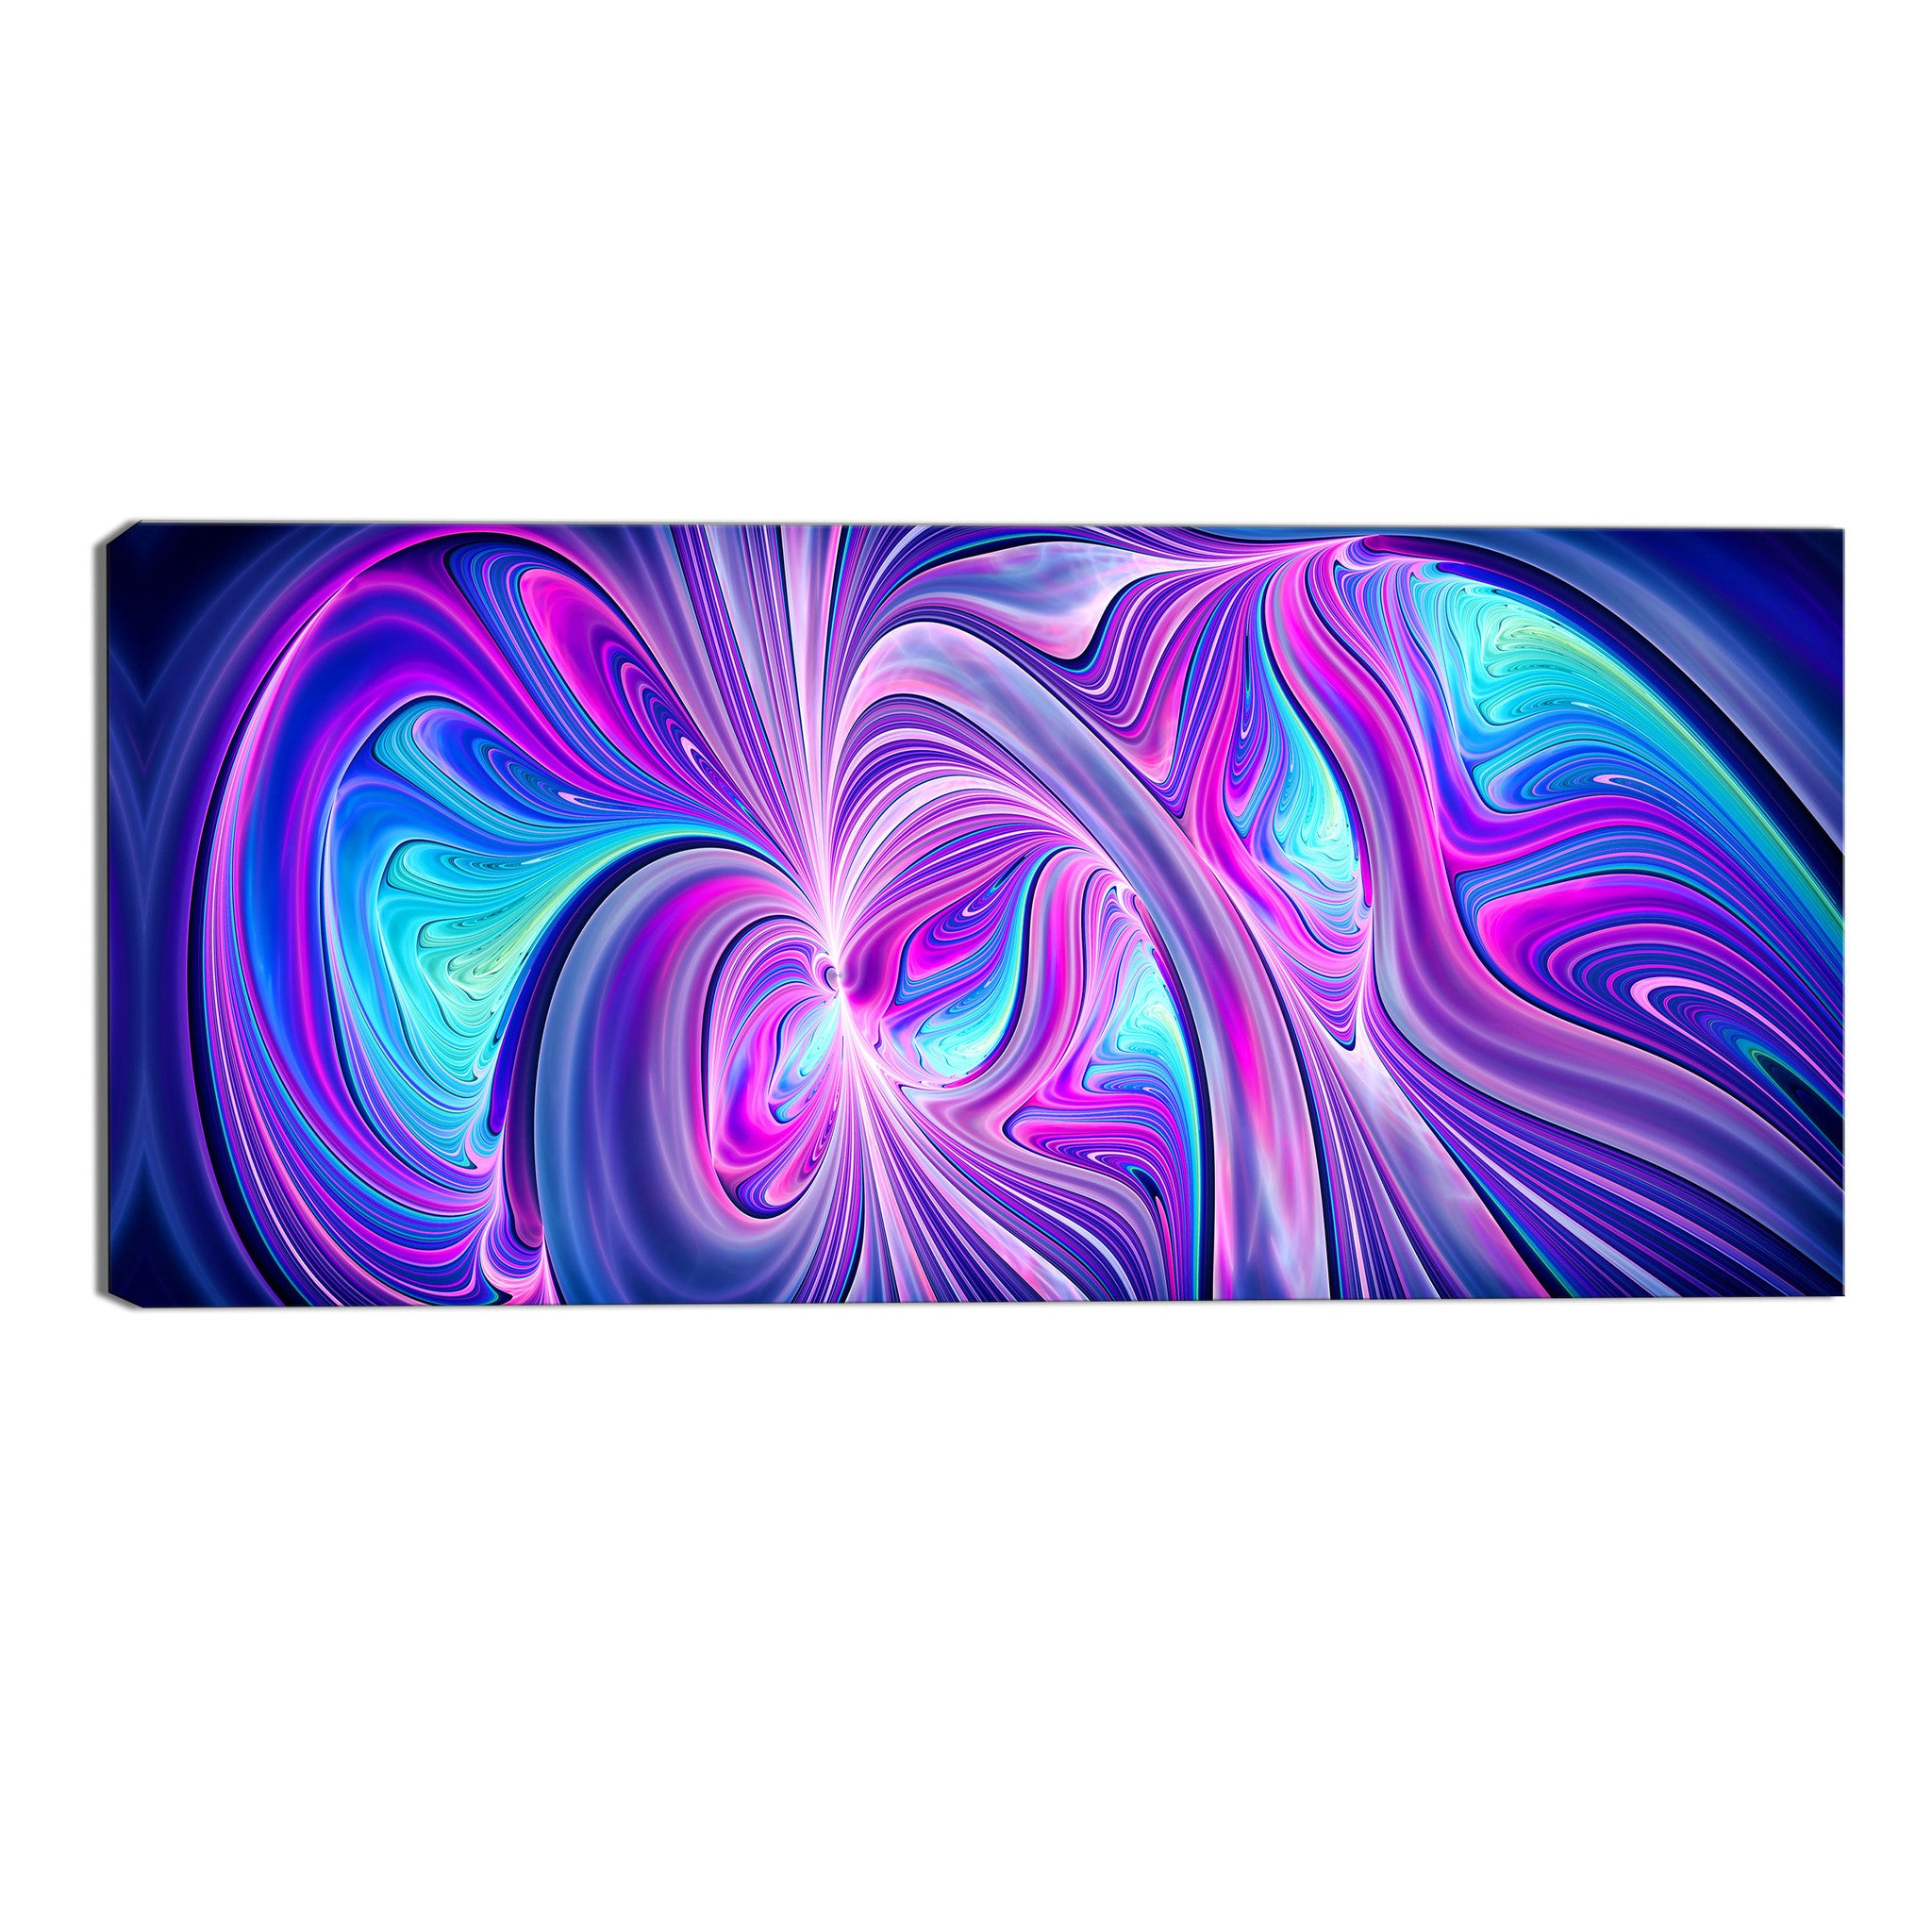 Blue and Purple Delight Abstract Canvas Wall Art Print  sc 1 st  Accent Canvas & Blue and Purple Delight Abstract Canvas Wall Art Print u2013 Accent Canvas